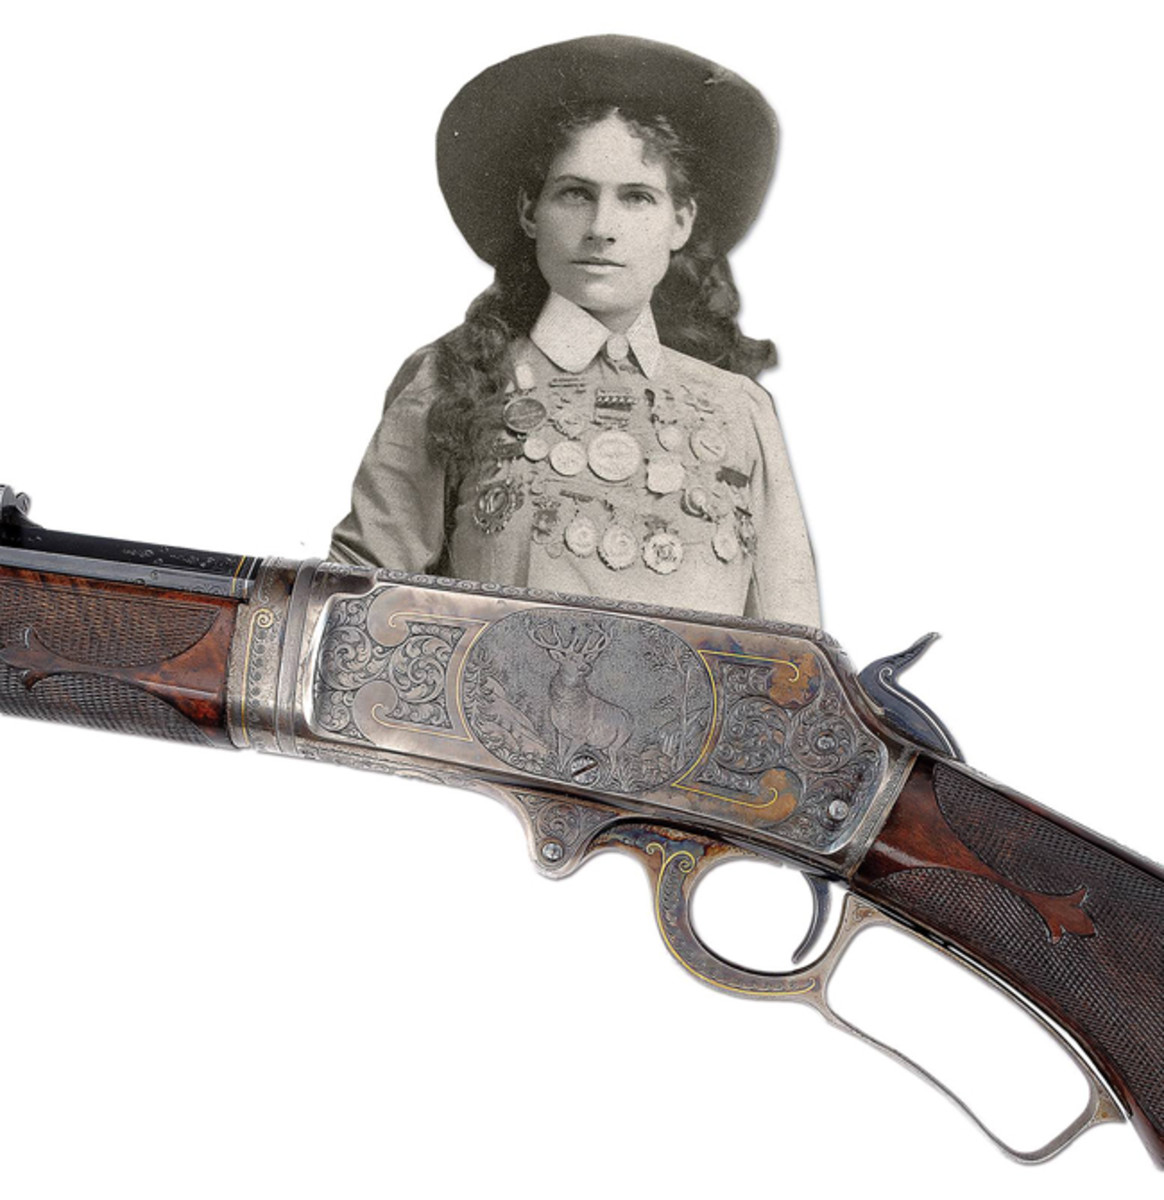 An engraved Marlin 1893 takedown rifle with gold & platinum inlays presented by Marlin to Annie Oakle